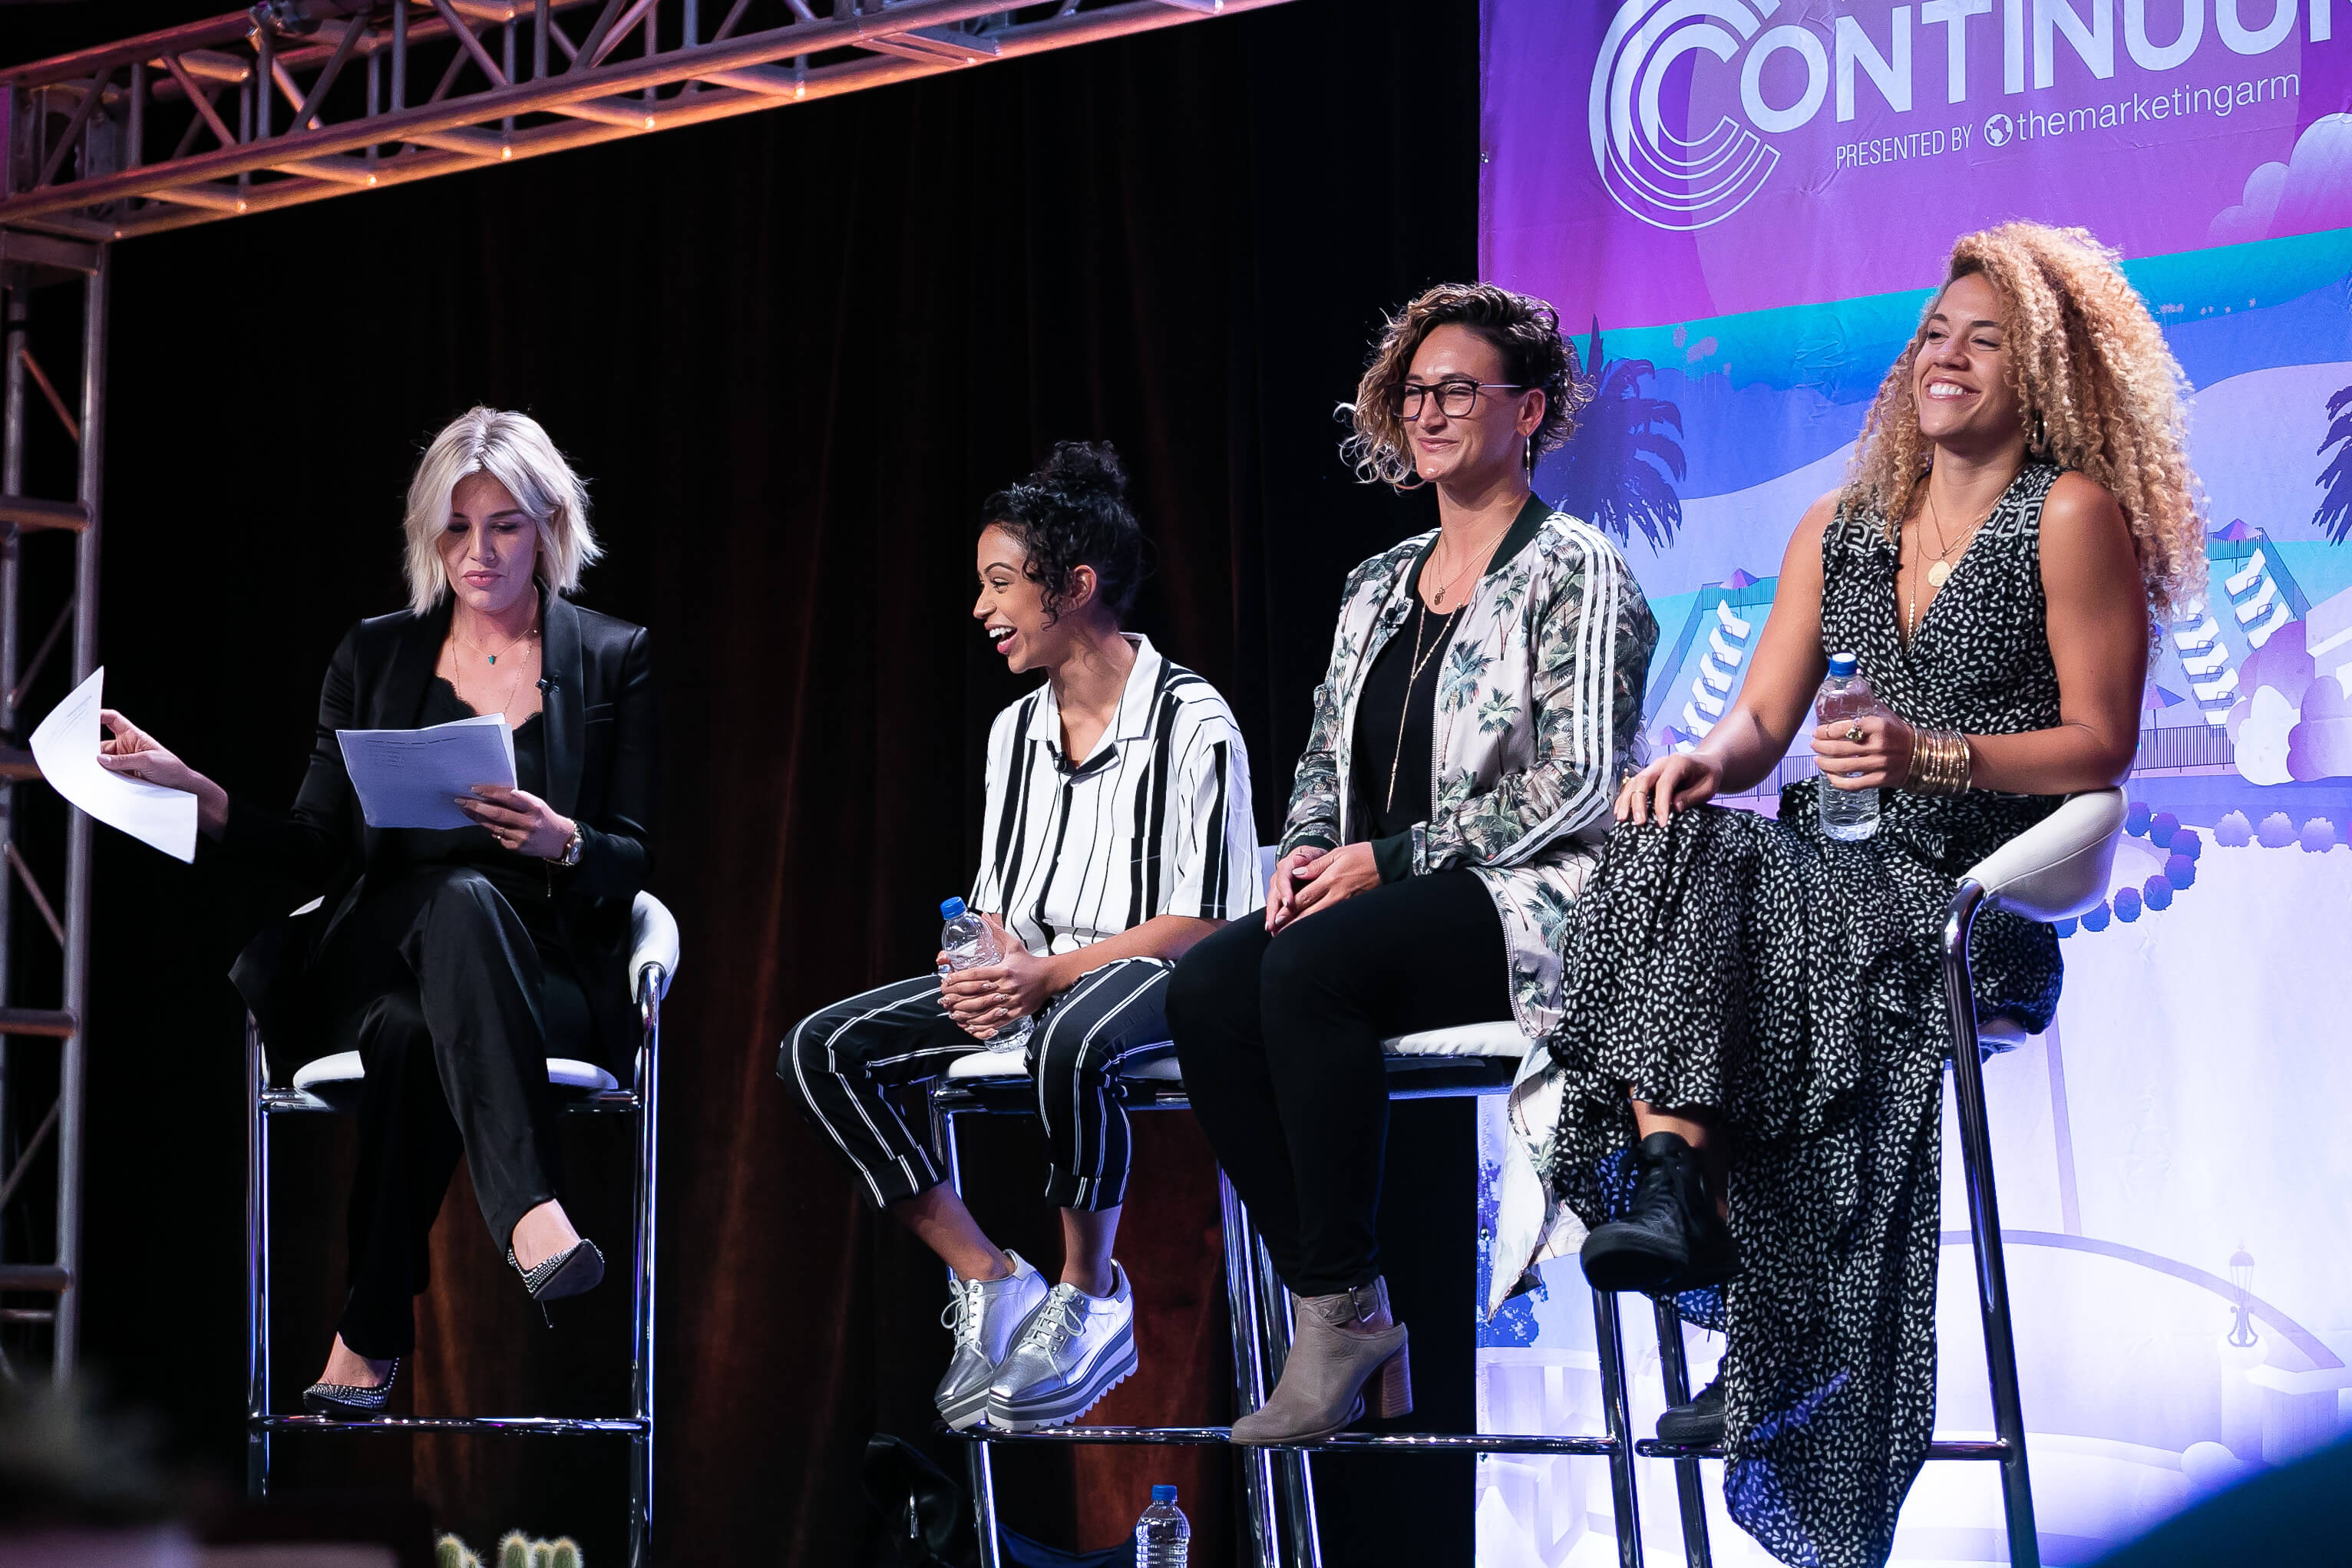 Charissa Thompson hosted a day of panels, which included some incredible influencers and creators: Women Empowerment in Influencer Marketing with Liza Koshy, Courtney Carter, and Carri Twigg; The Influencer CMO with Derek Hough, Jeanette Getrost, Matt Bellassai, and Young Guru; a Fireside Chat with Ray Clark and Jay Shetty; and For a Cause with Anna Akana, Tyler Oakley, Brooks Laich and Charissa Thompson.